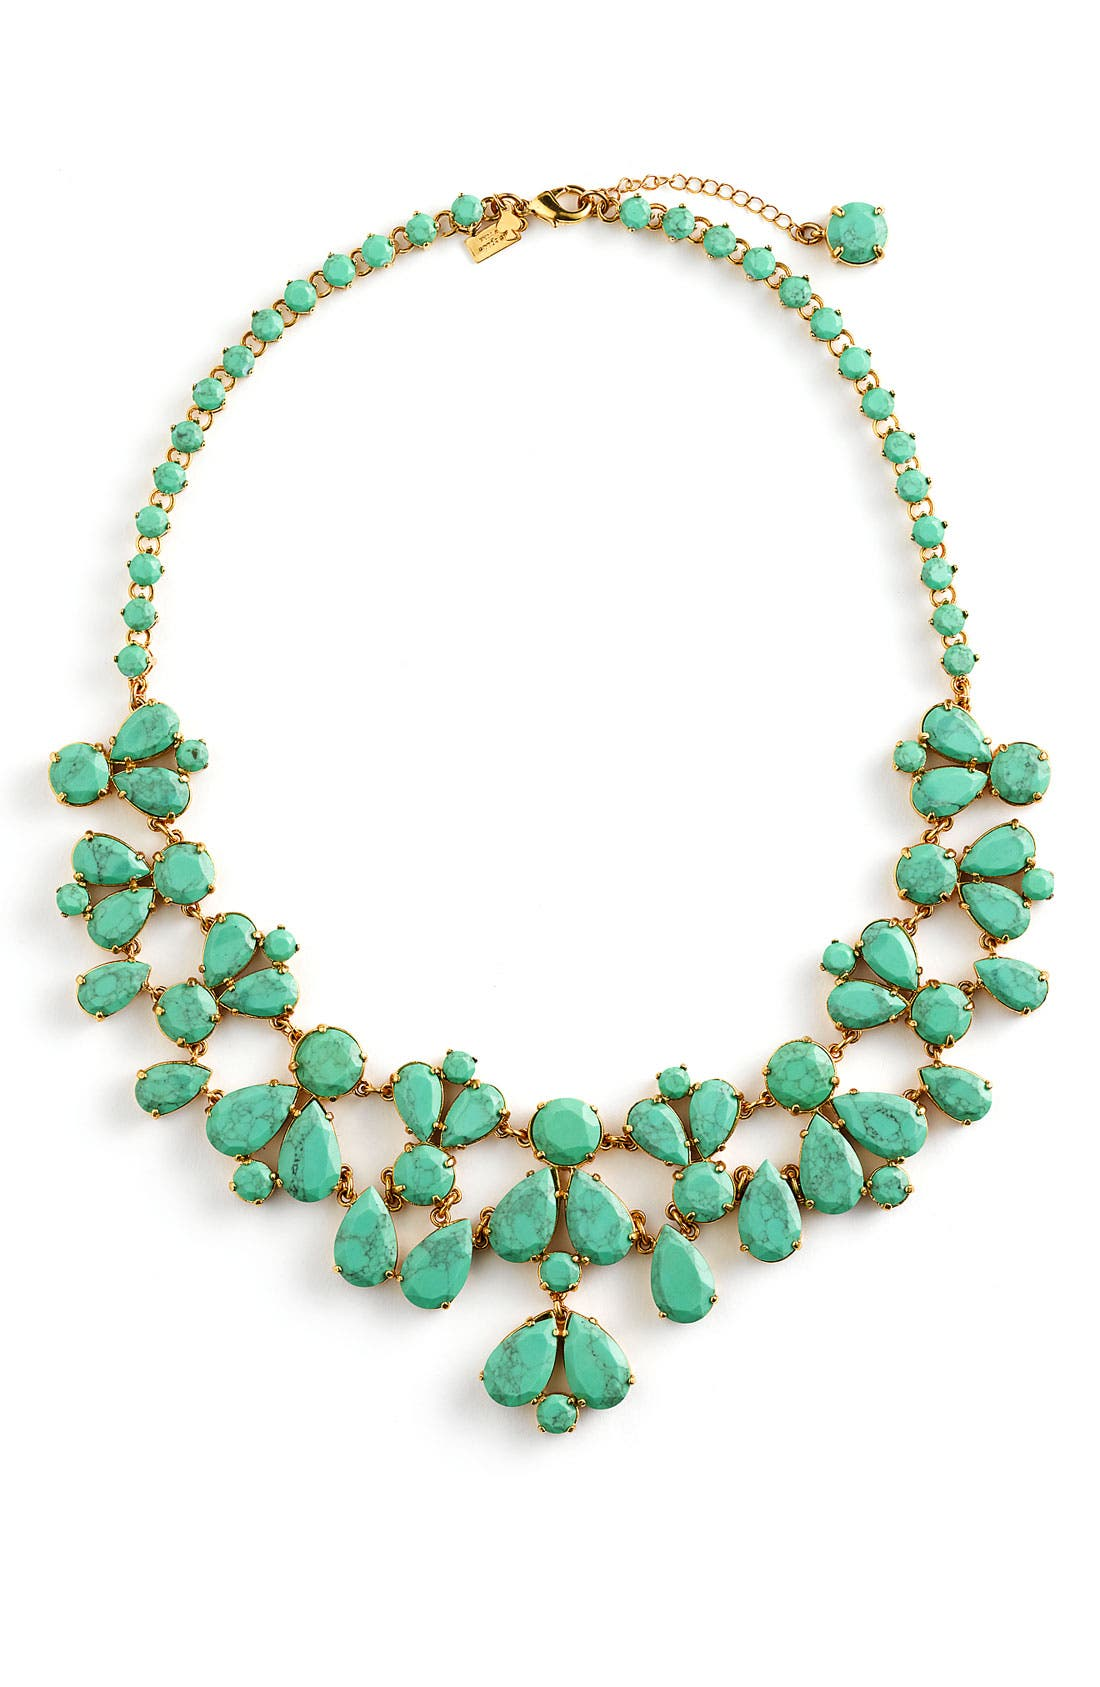 Main Image - kate spade new york 'fiorella' floral bib necklace